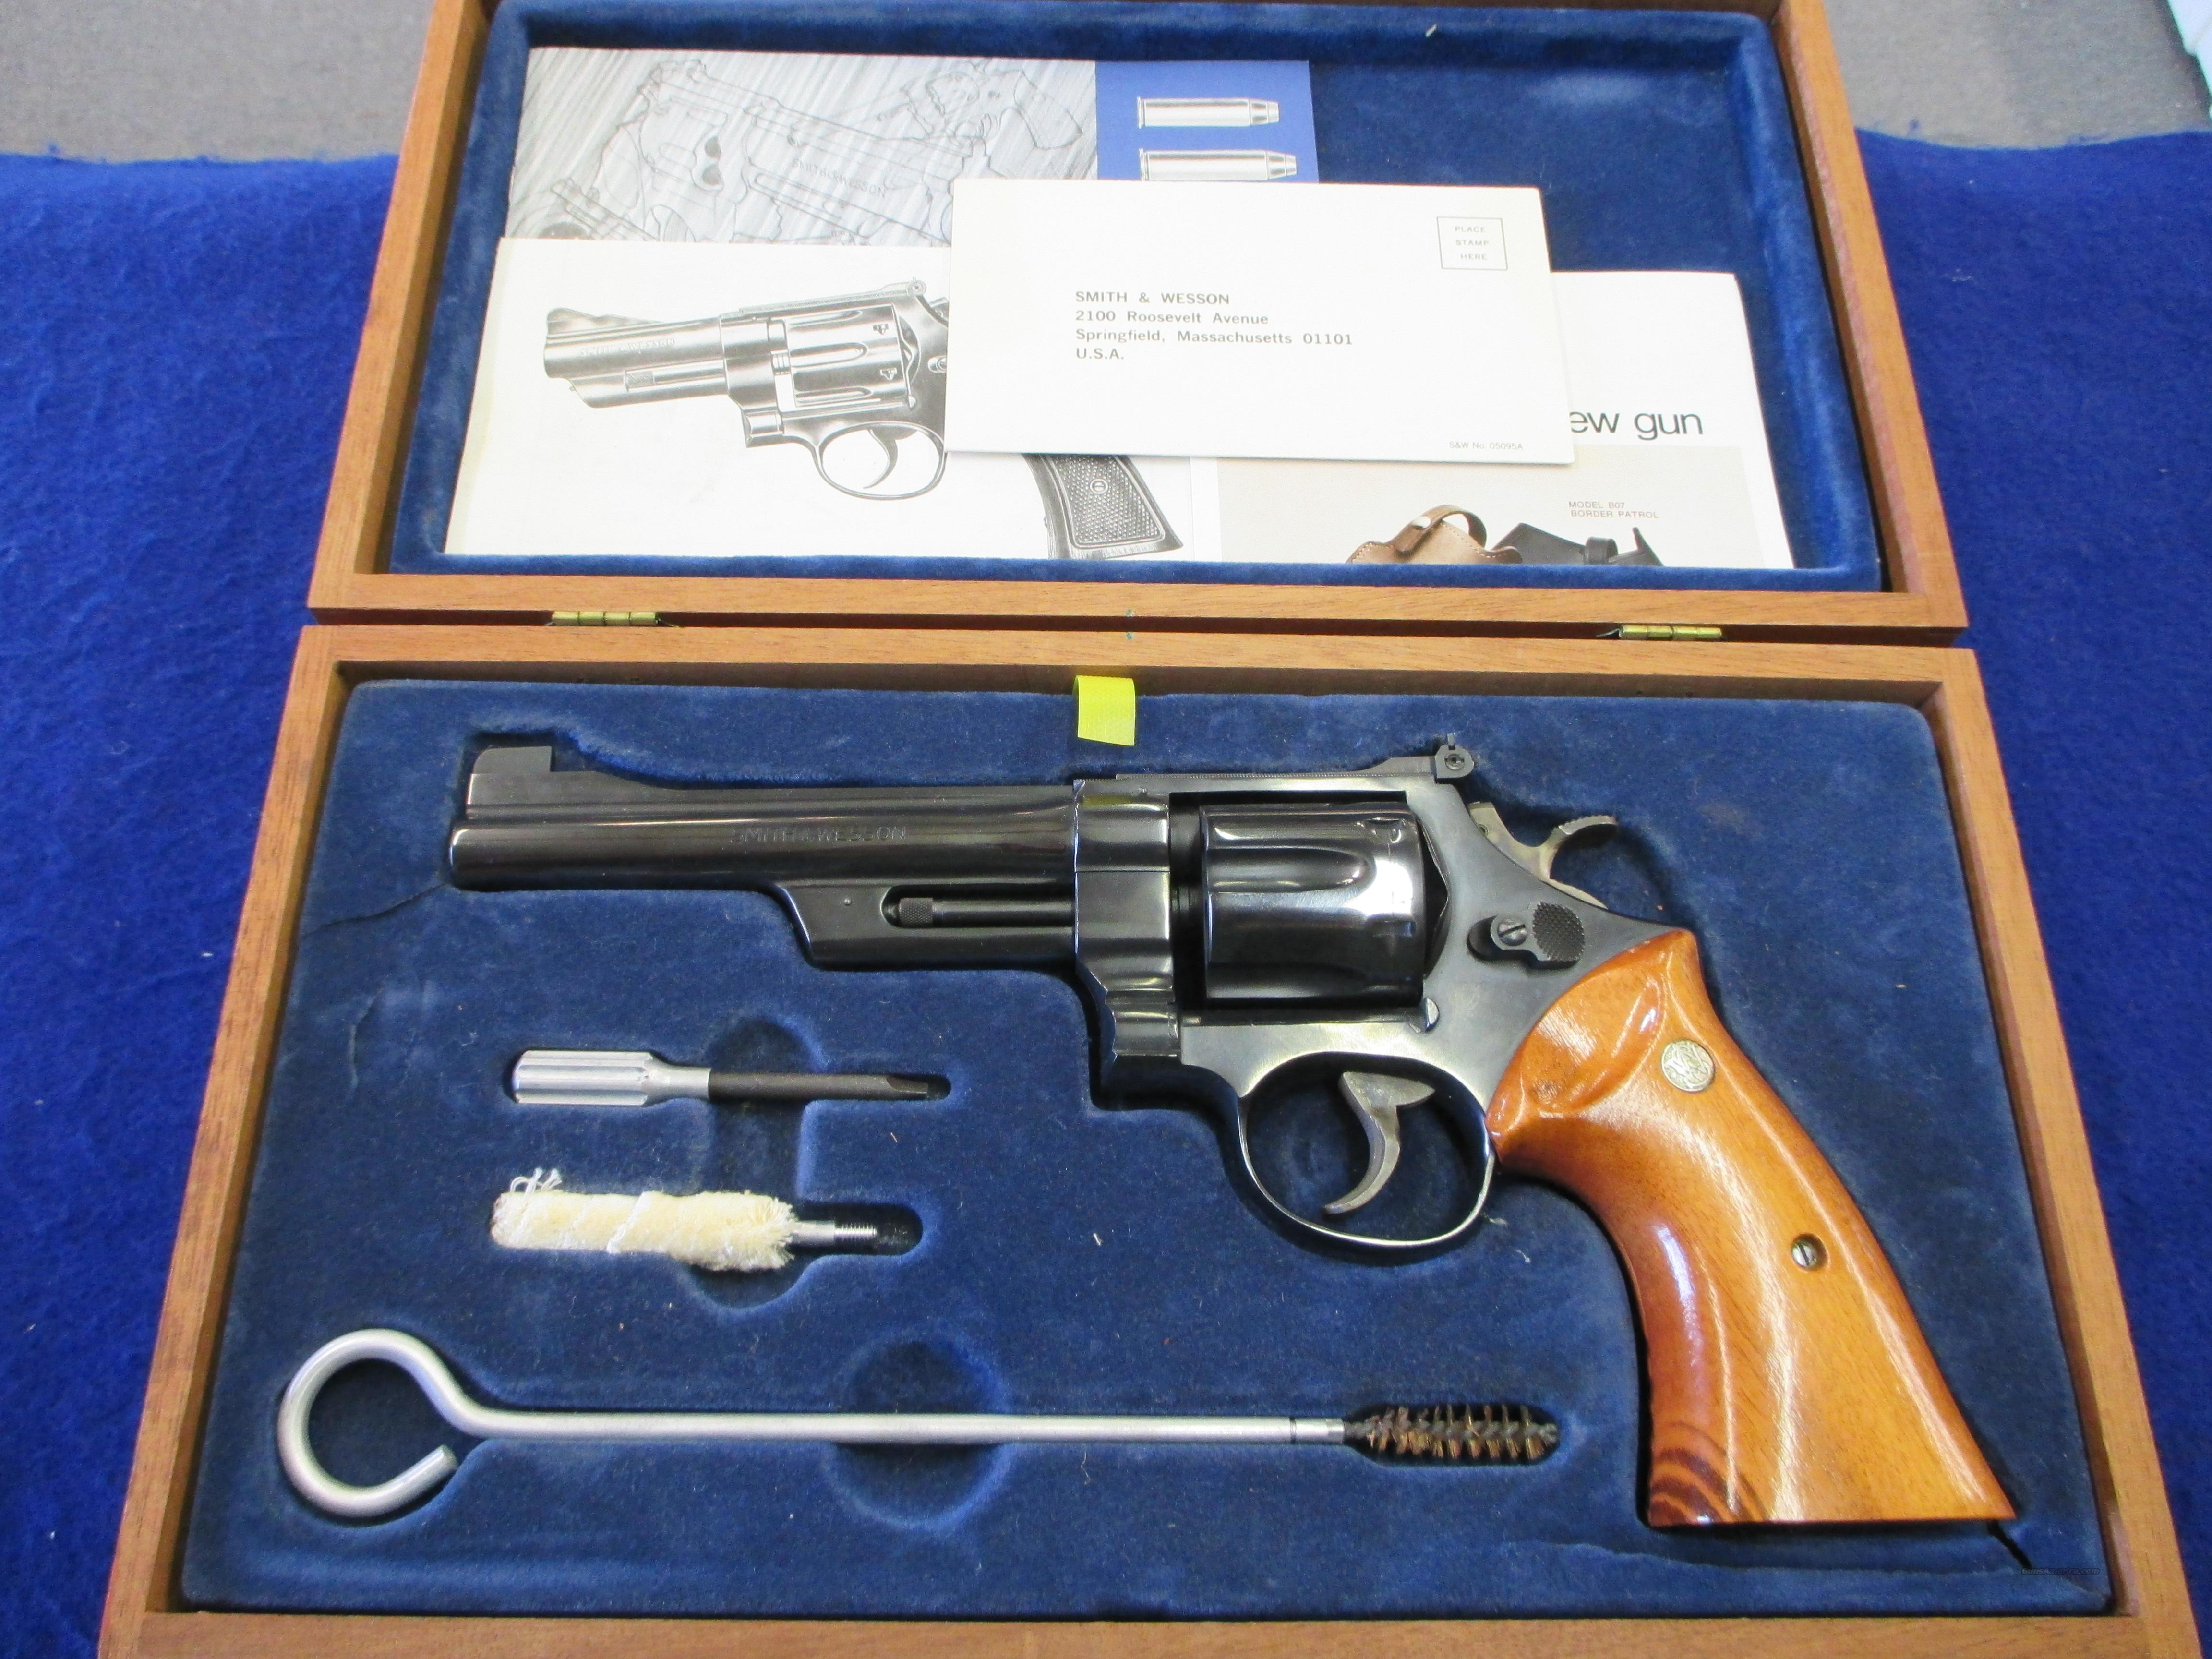 Smith & Wesson Mod. 27-2  357Mag   Guns > Pistols > Smith & Wesson Revolvers > Full Frame Revolver